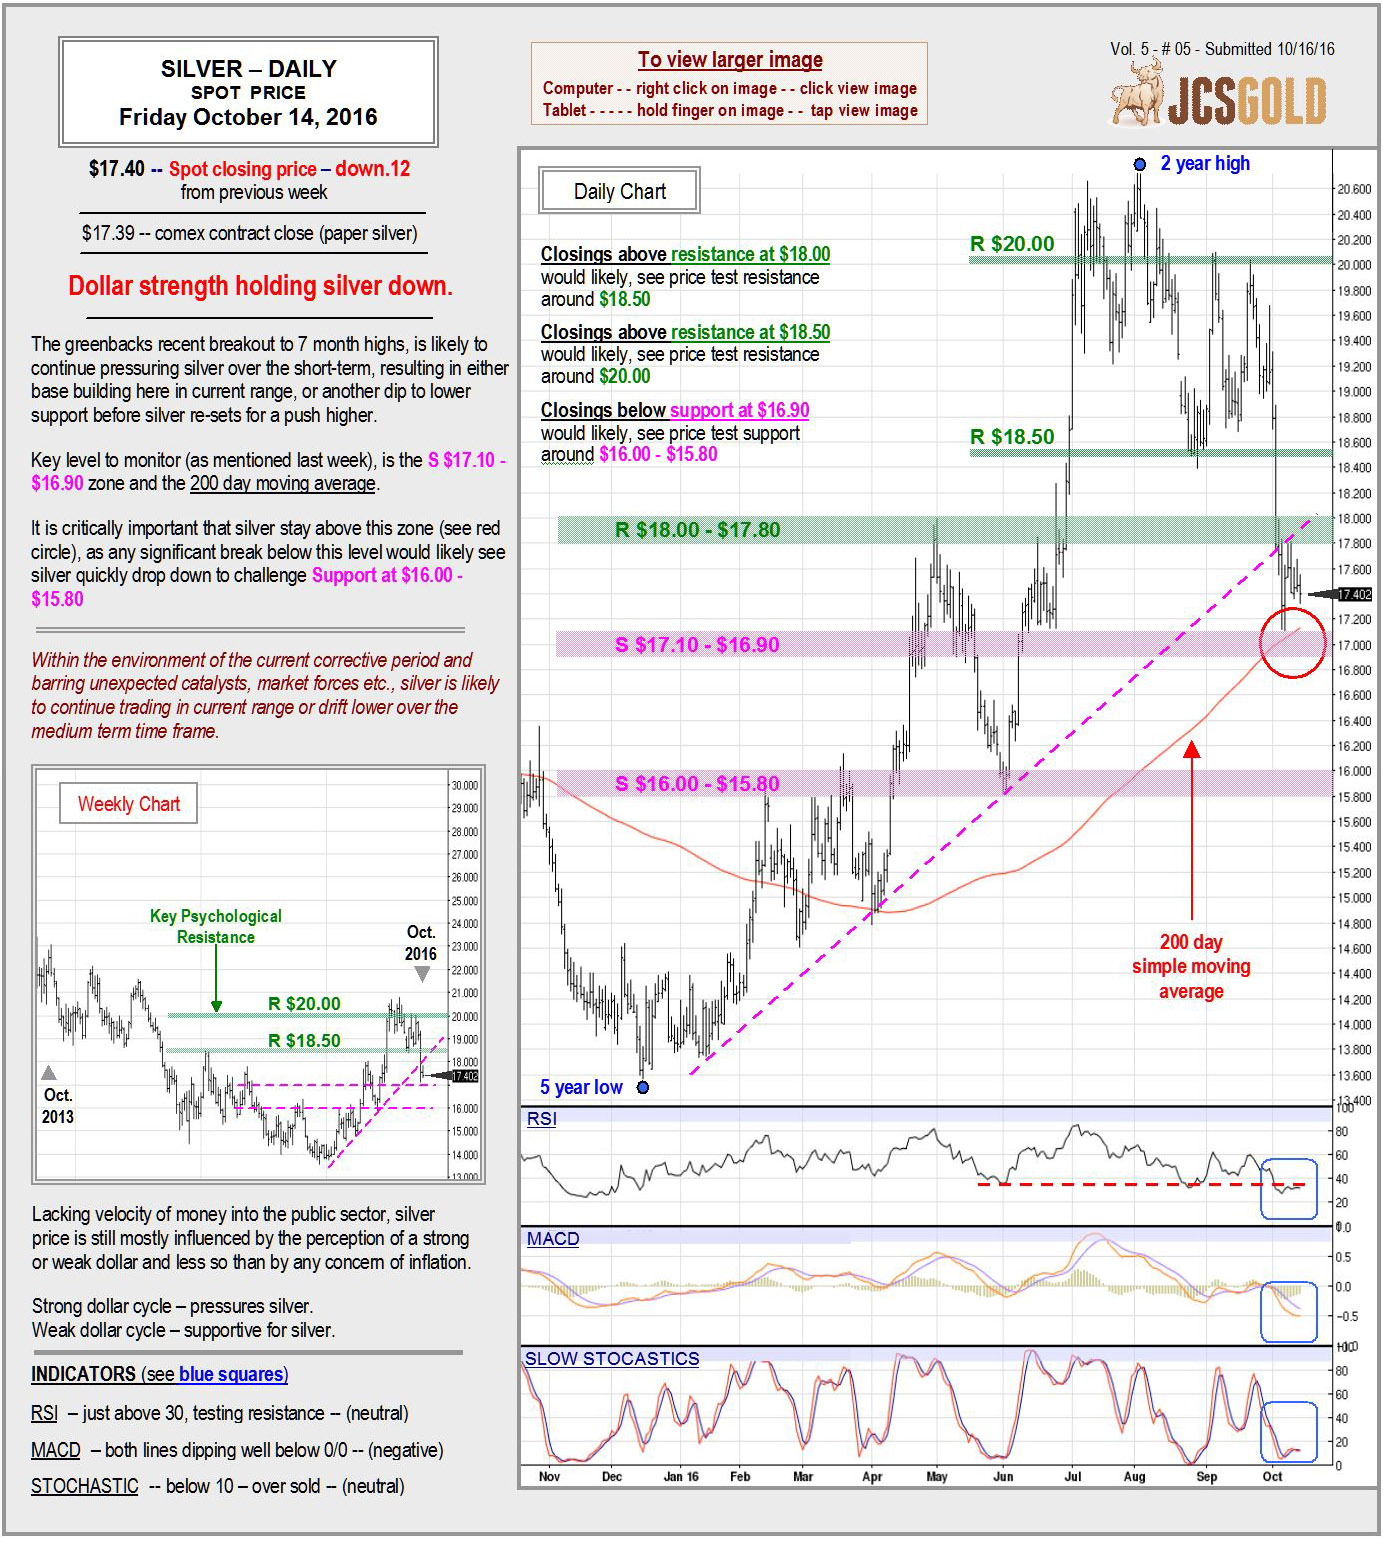 Oct 14, 2016 chart & commentary